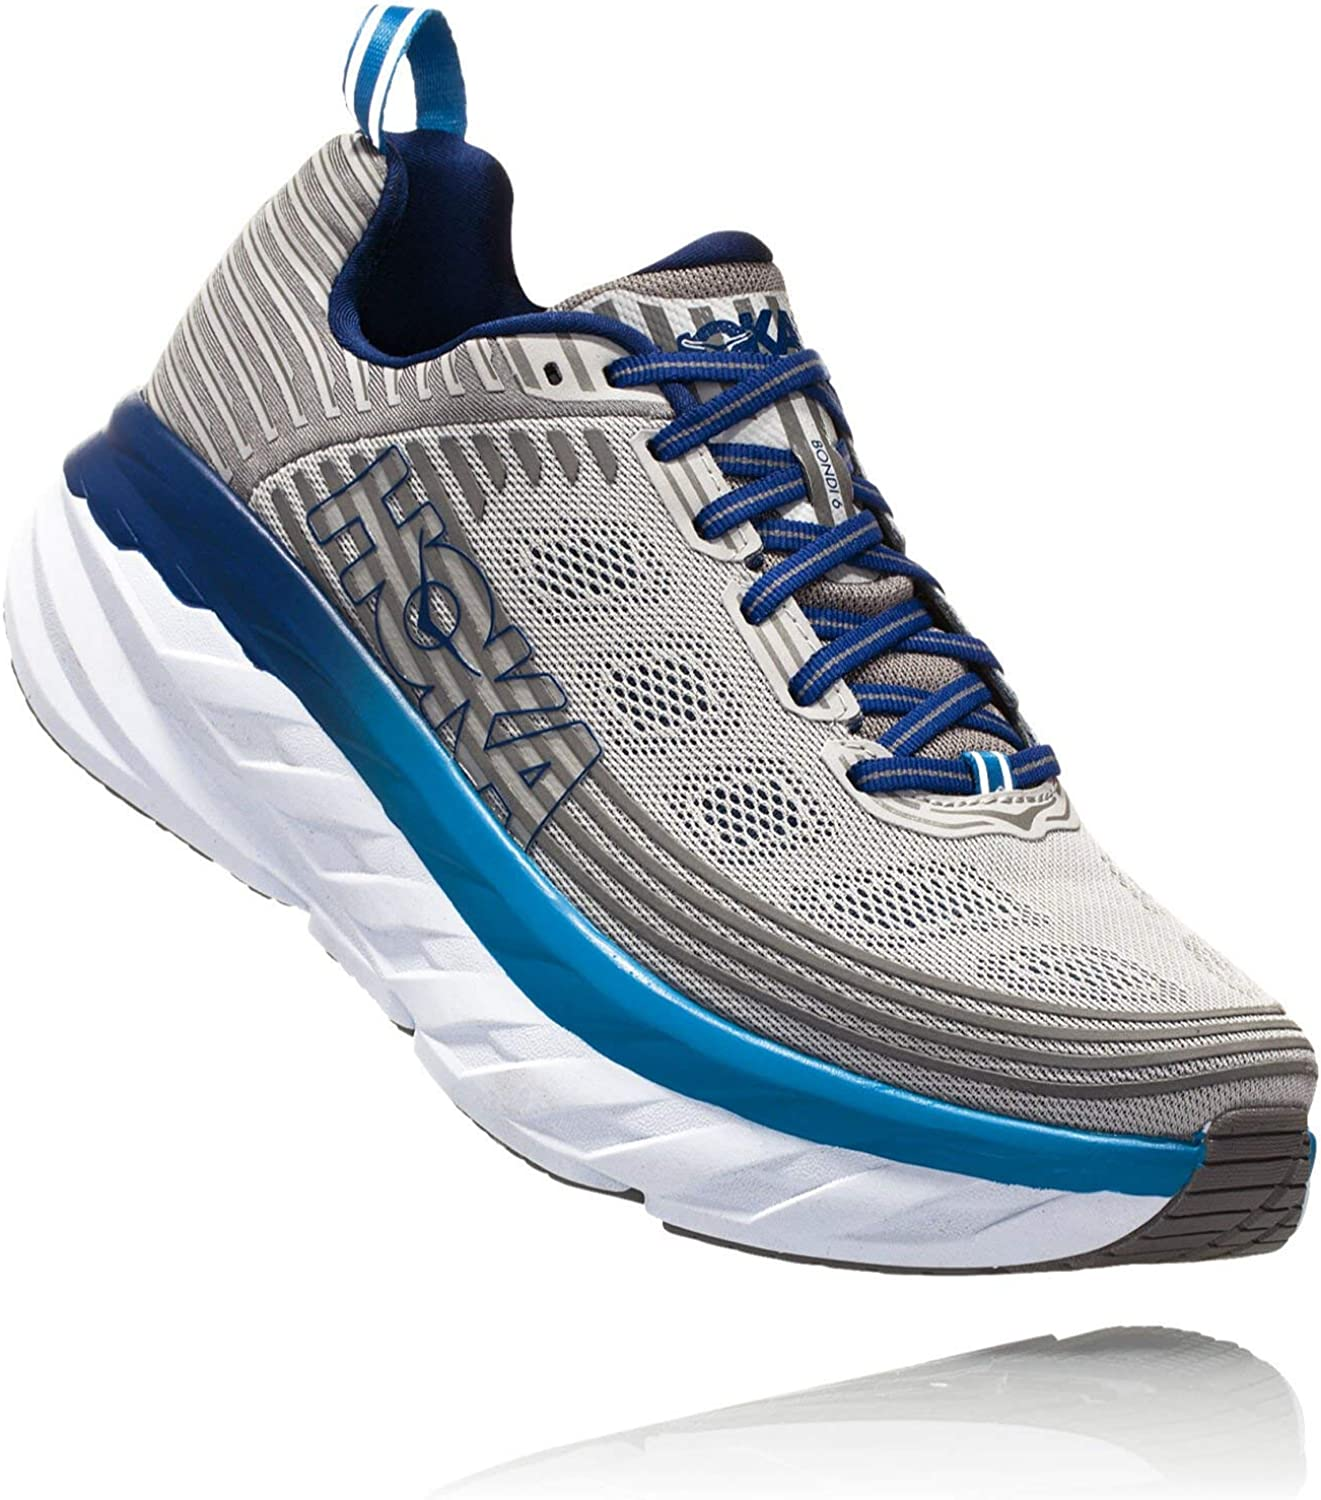 HOKA ONE ONE Mens Bondi 6 Blue Frost Gray Running Shoe – 10.5